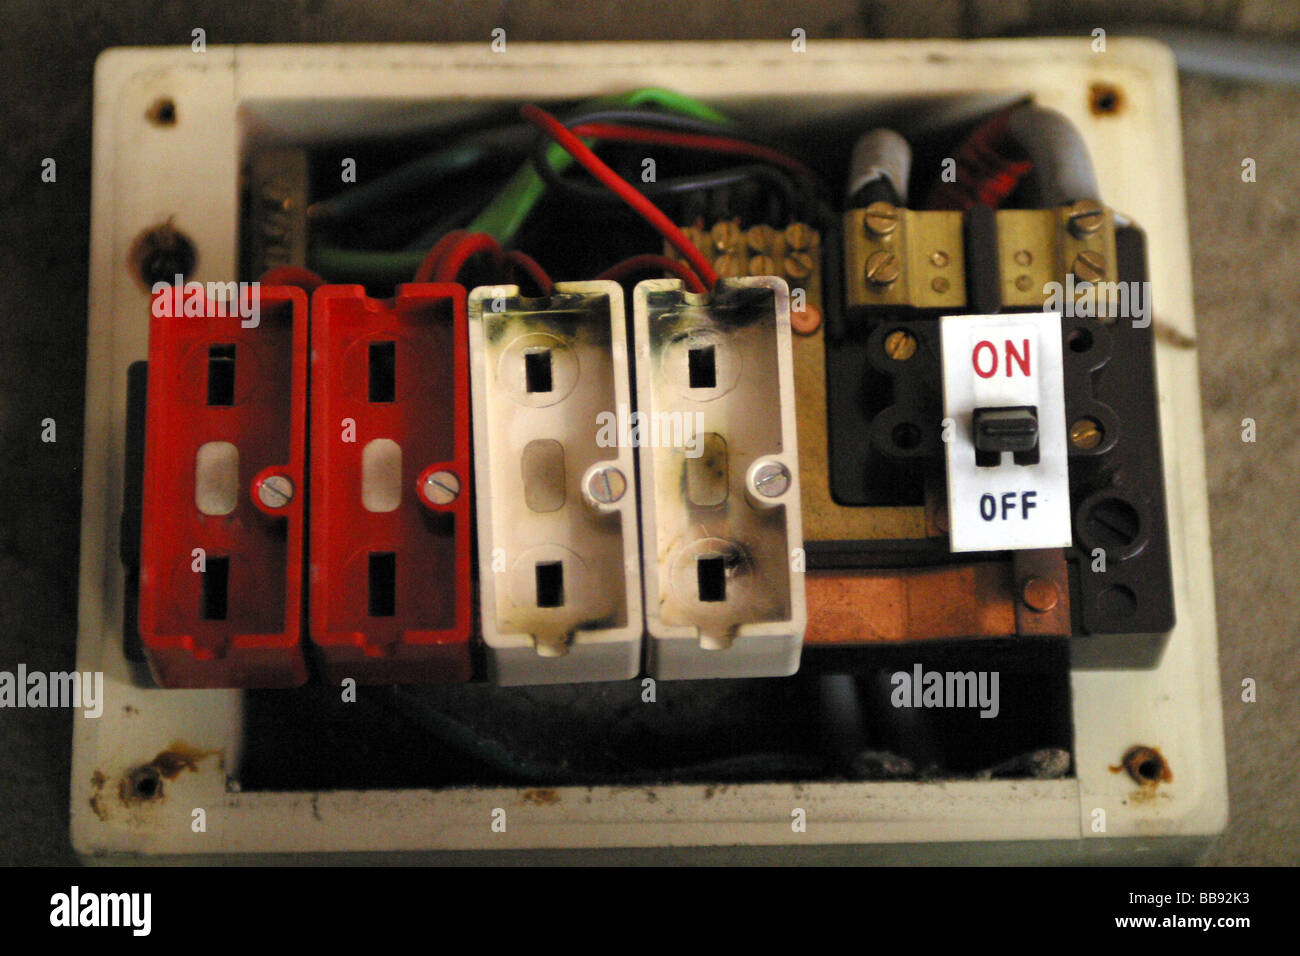 Comfortable Bdneww Huge Vehicle Alarm Wiring Diagram Round One Humbucker One Volume Wiring Dimarzio Pickup Wiring Color Code Young Car Alarm Wiring Black2 Wire Humbucker Old Fuses Fuse Box Stock Photos \u0026 Old Fuses Fuse Box Stock Images ..